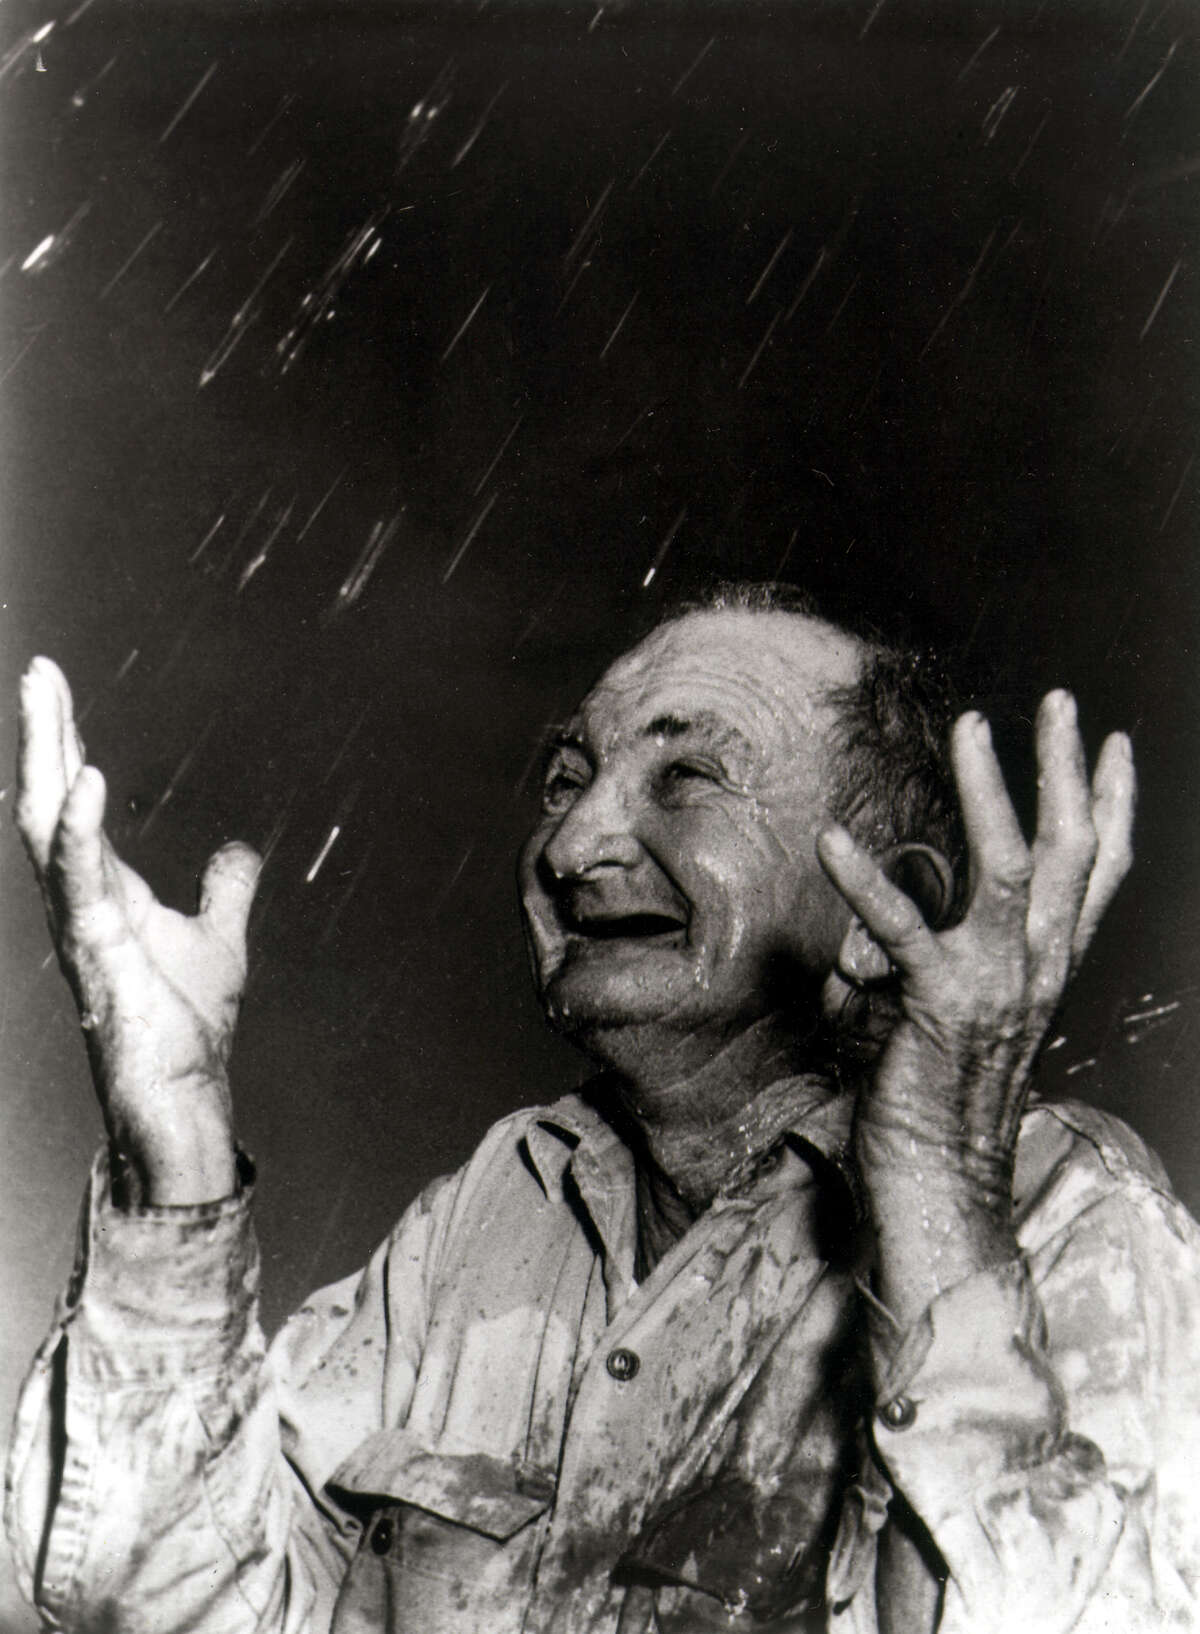 In this 1951 photo of Sam J. Smith, a San Antonio farmer, is elated by the rain during the severe drought. The photo, taken by former San Antonio Light photographer Harvey Belgin, was a finalist for a Pulitzer Prize in 1952. The photo was highlight on Sunday, April 4, 2021, by Traces of Texas Twitter account.(Harvey Belgin/San Antonio Light) This photo now belongs to the Institute of Texan Cultures, which used it in a 1998 exhibit about Texas weather.